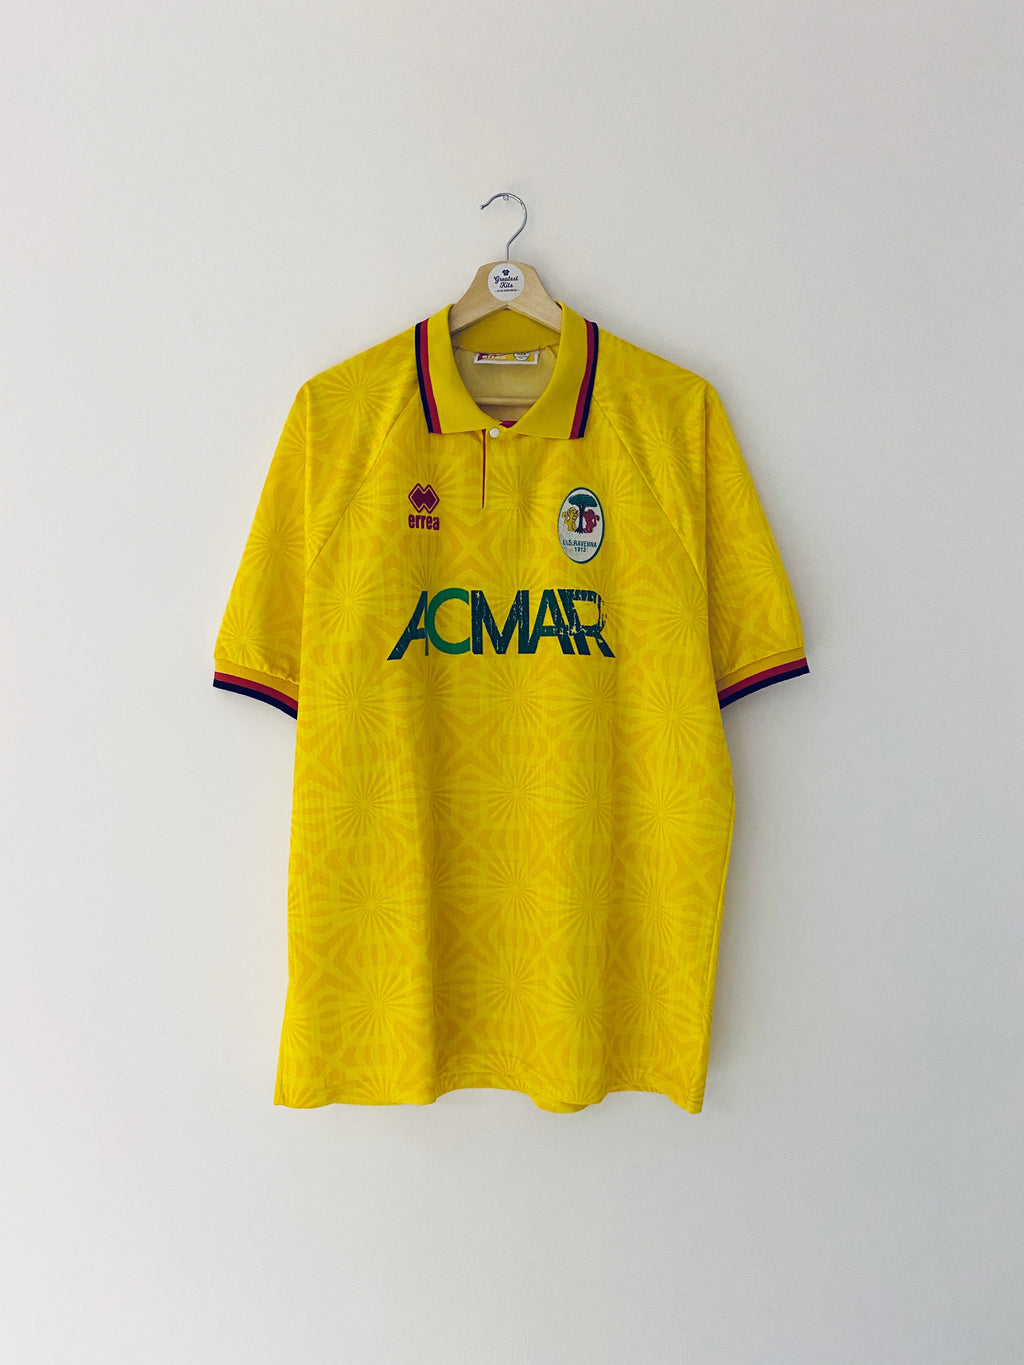 1994/95 Ravenna Home Shirt (XL) 7.5/10